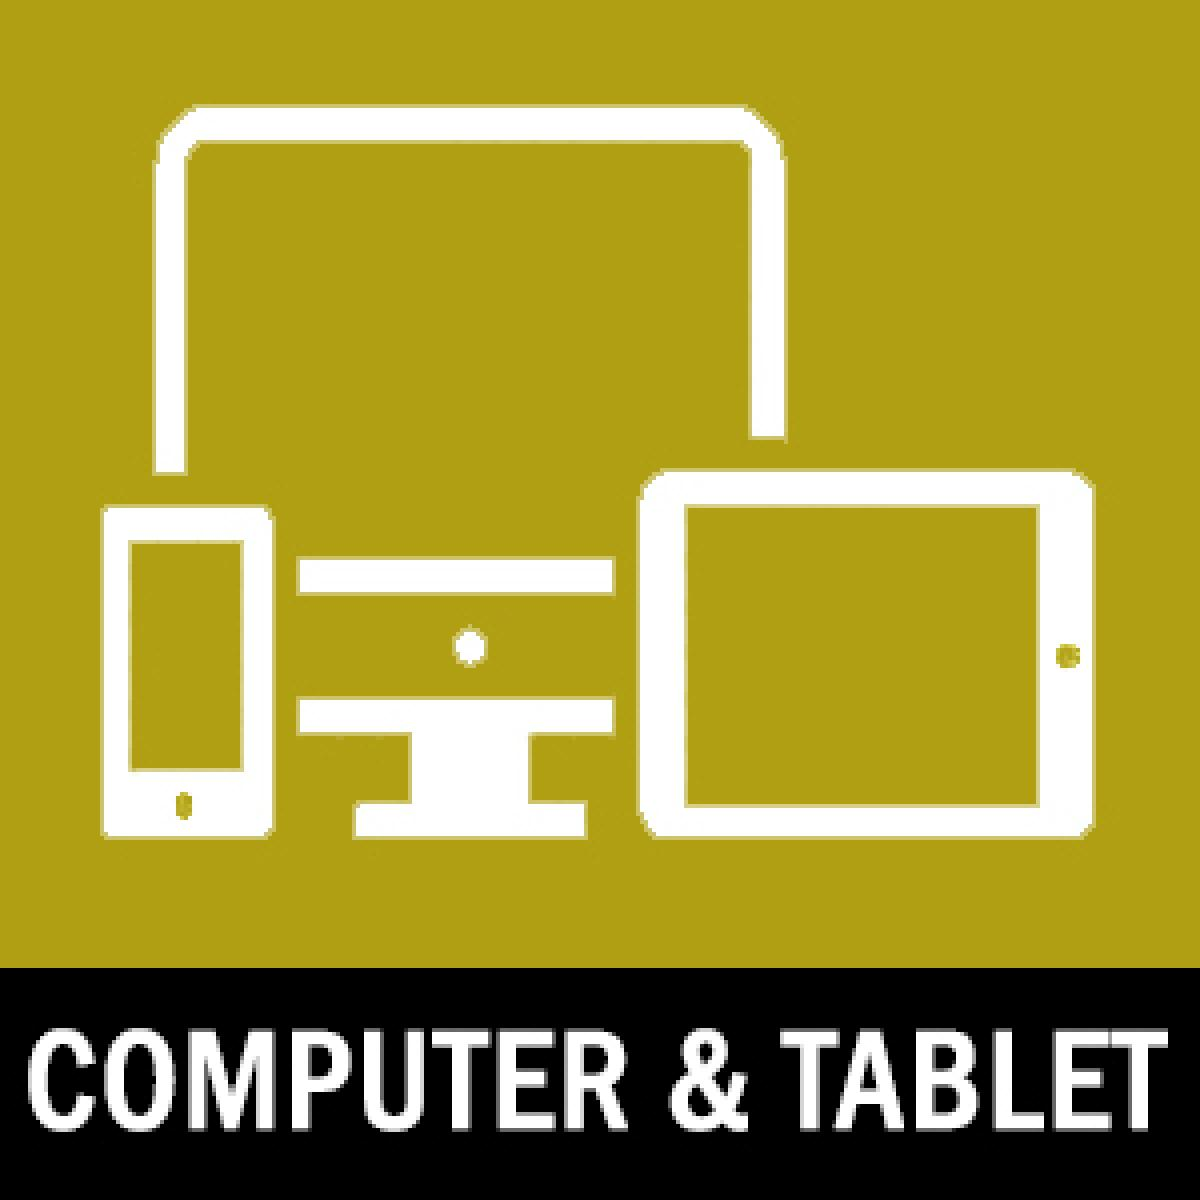 Computer & Tablet